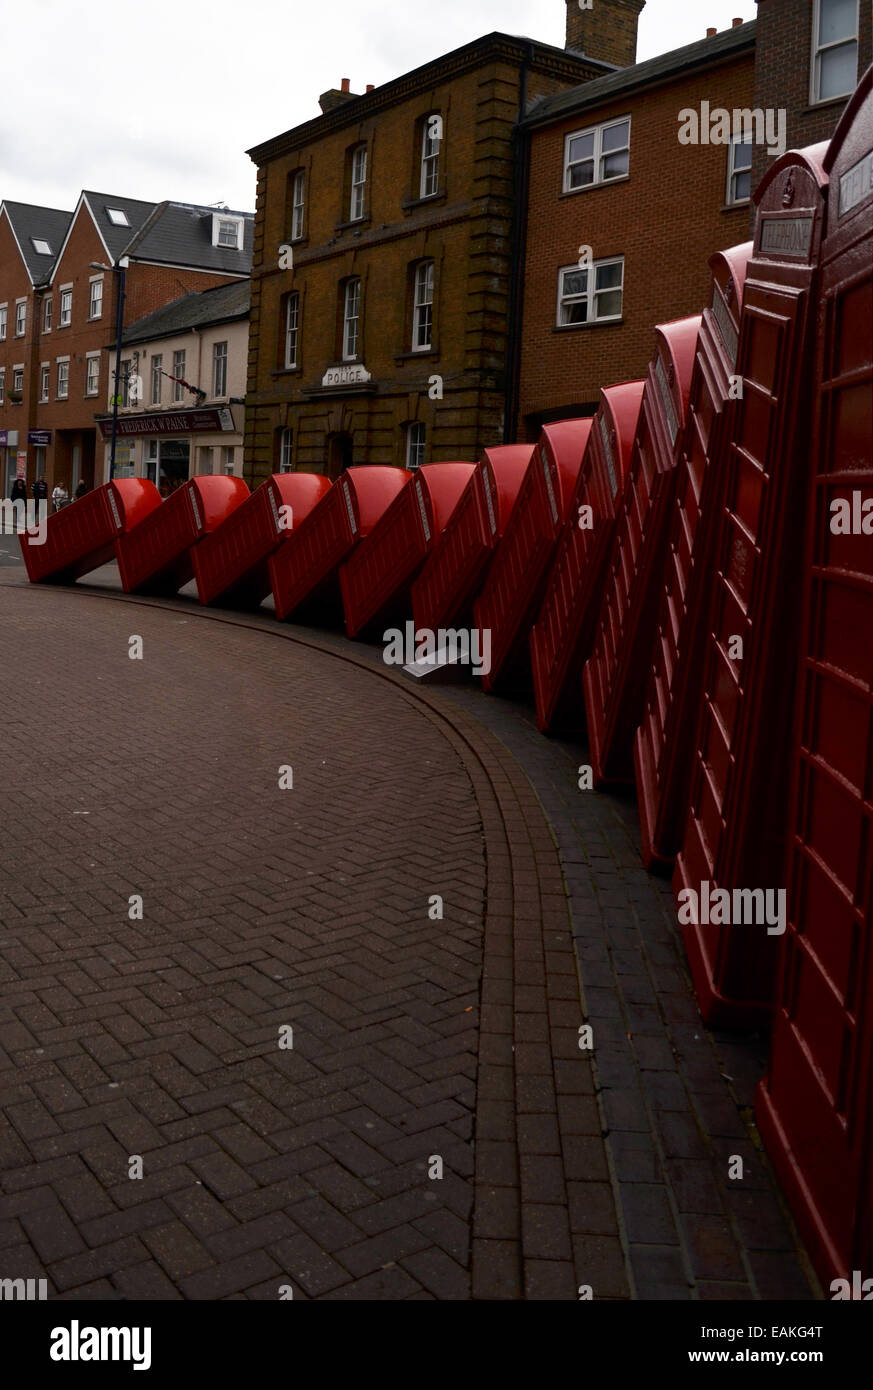 Tipsy telephone boxes. By David Mach - Stock Image